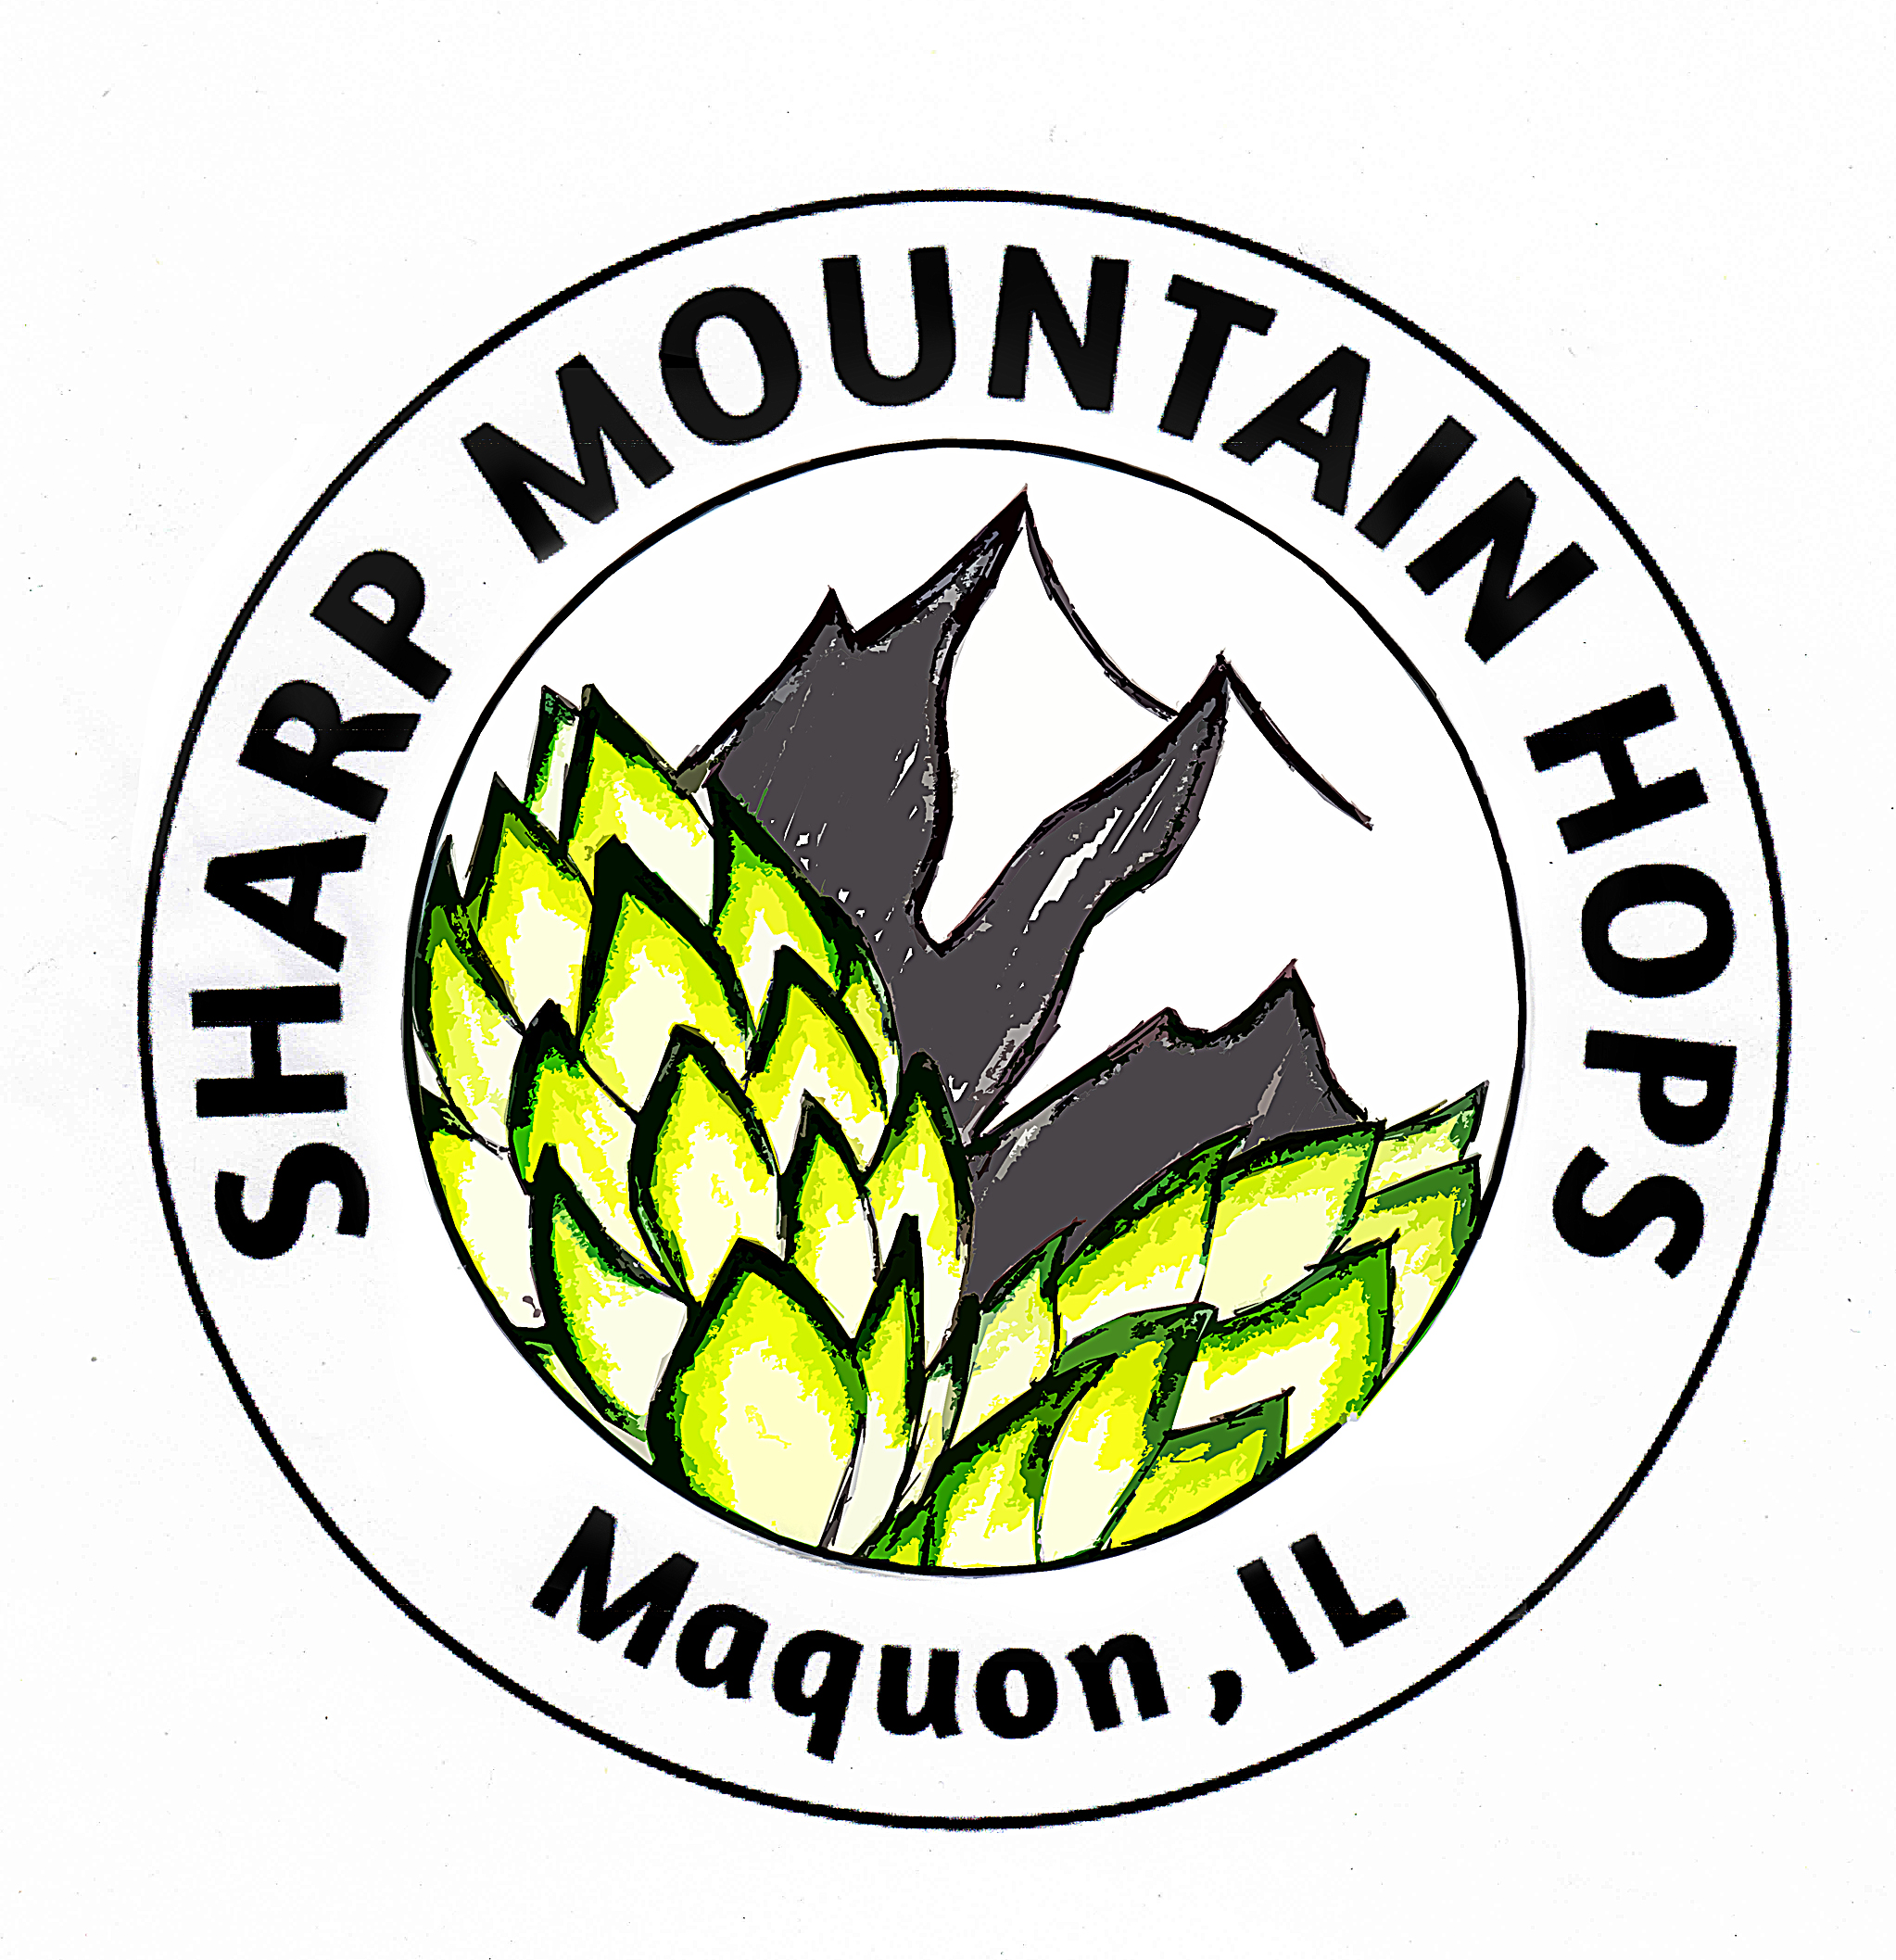 sharpmountainhops